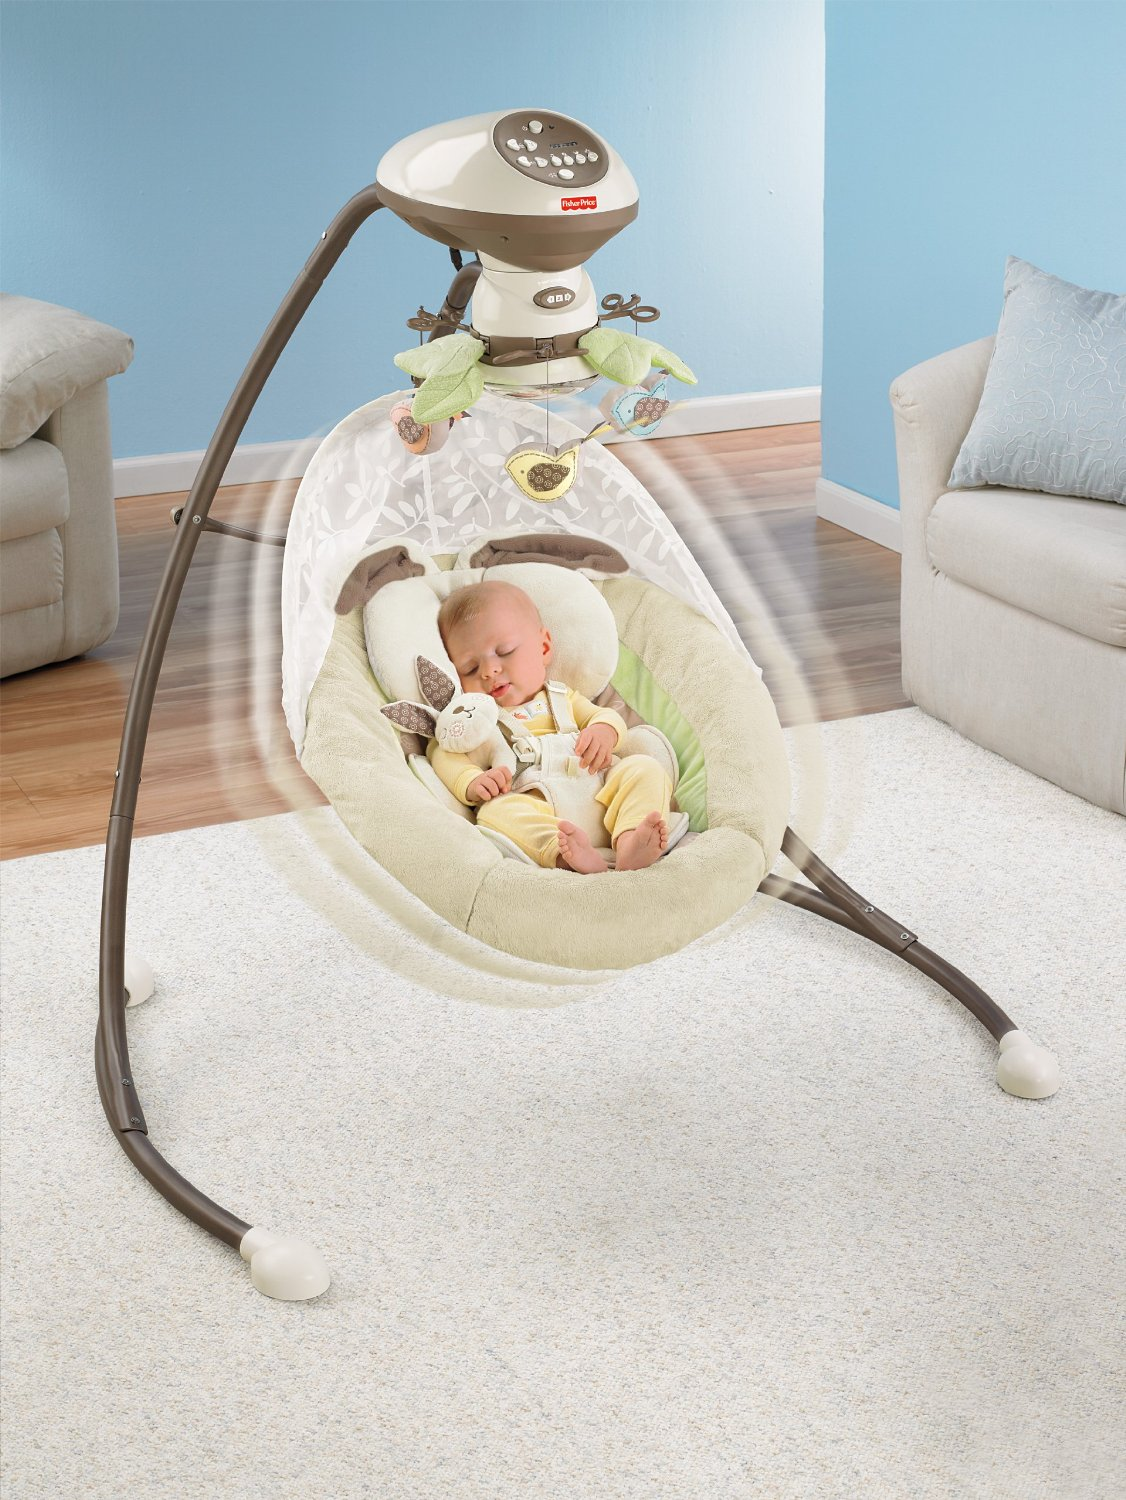 Snugabunny Cradle N Swing Best Educational Infant Toys Stores Singapore